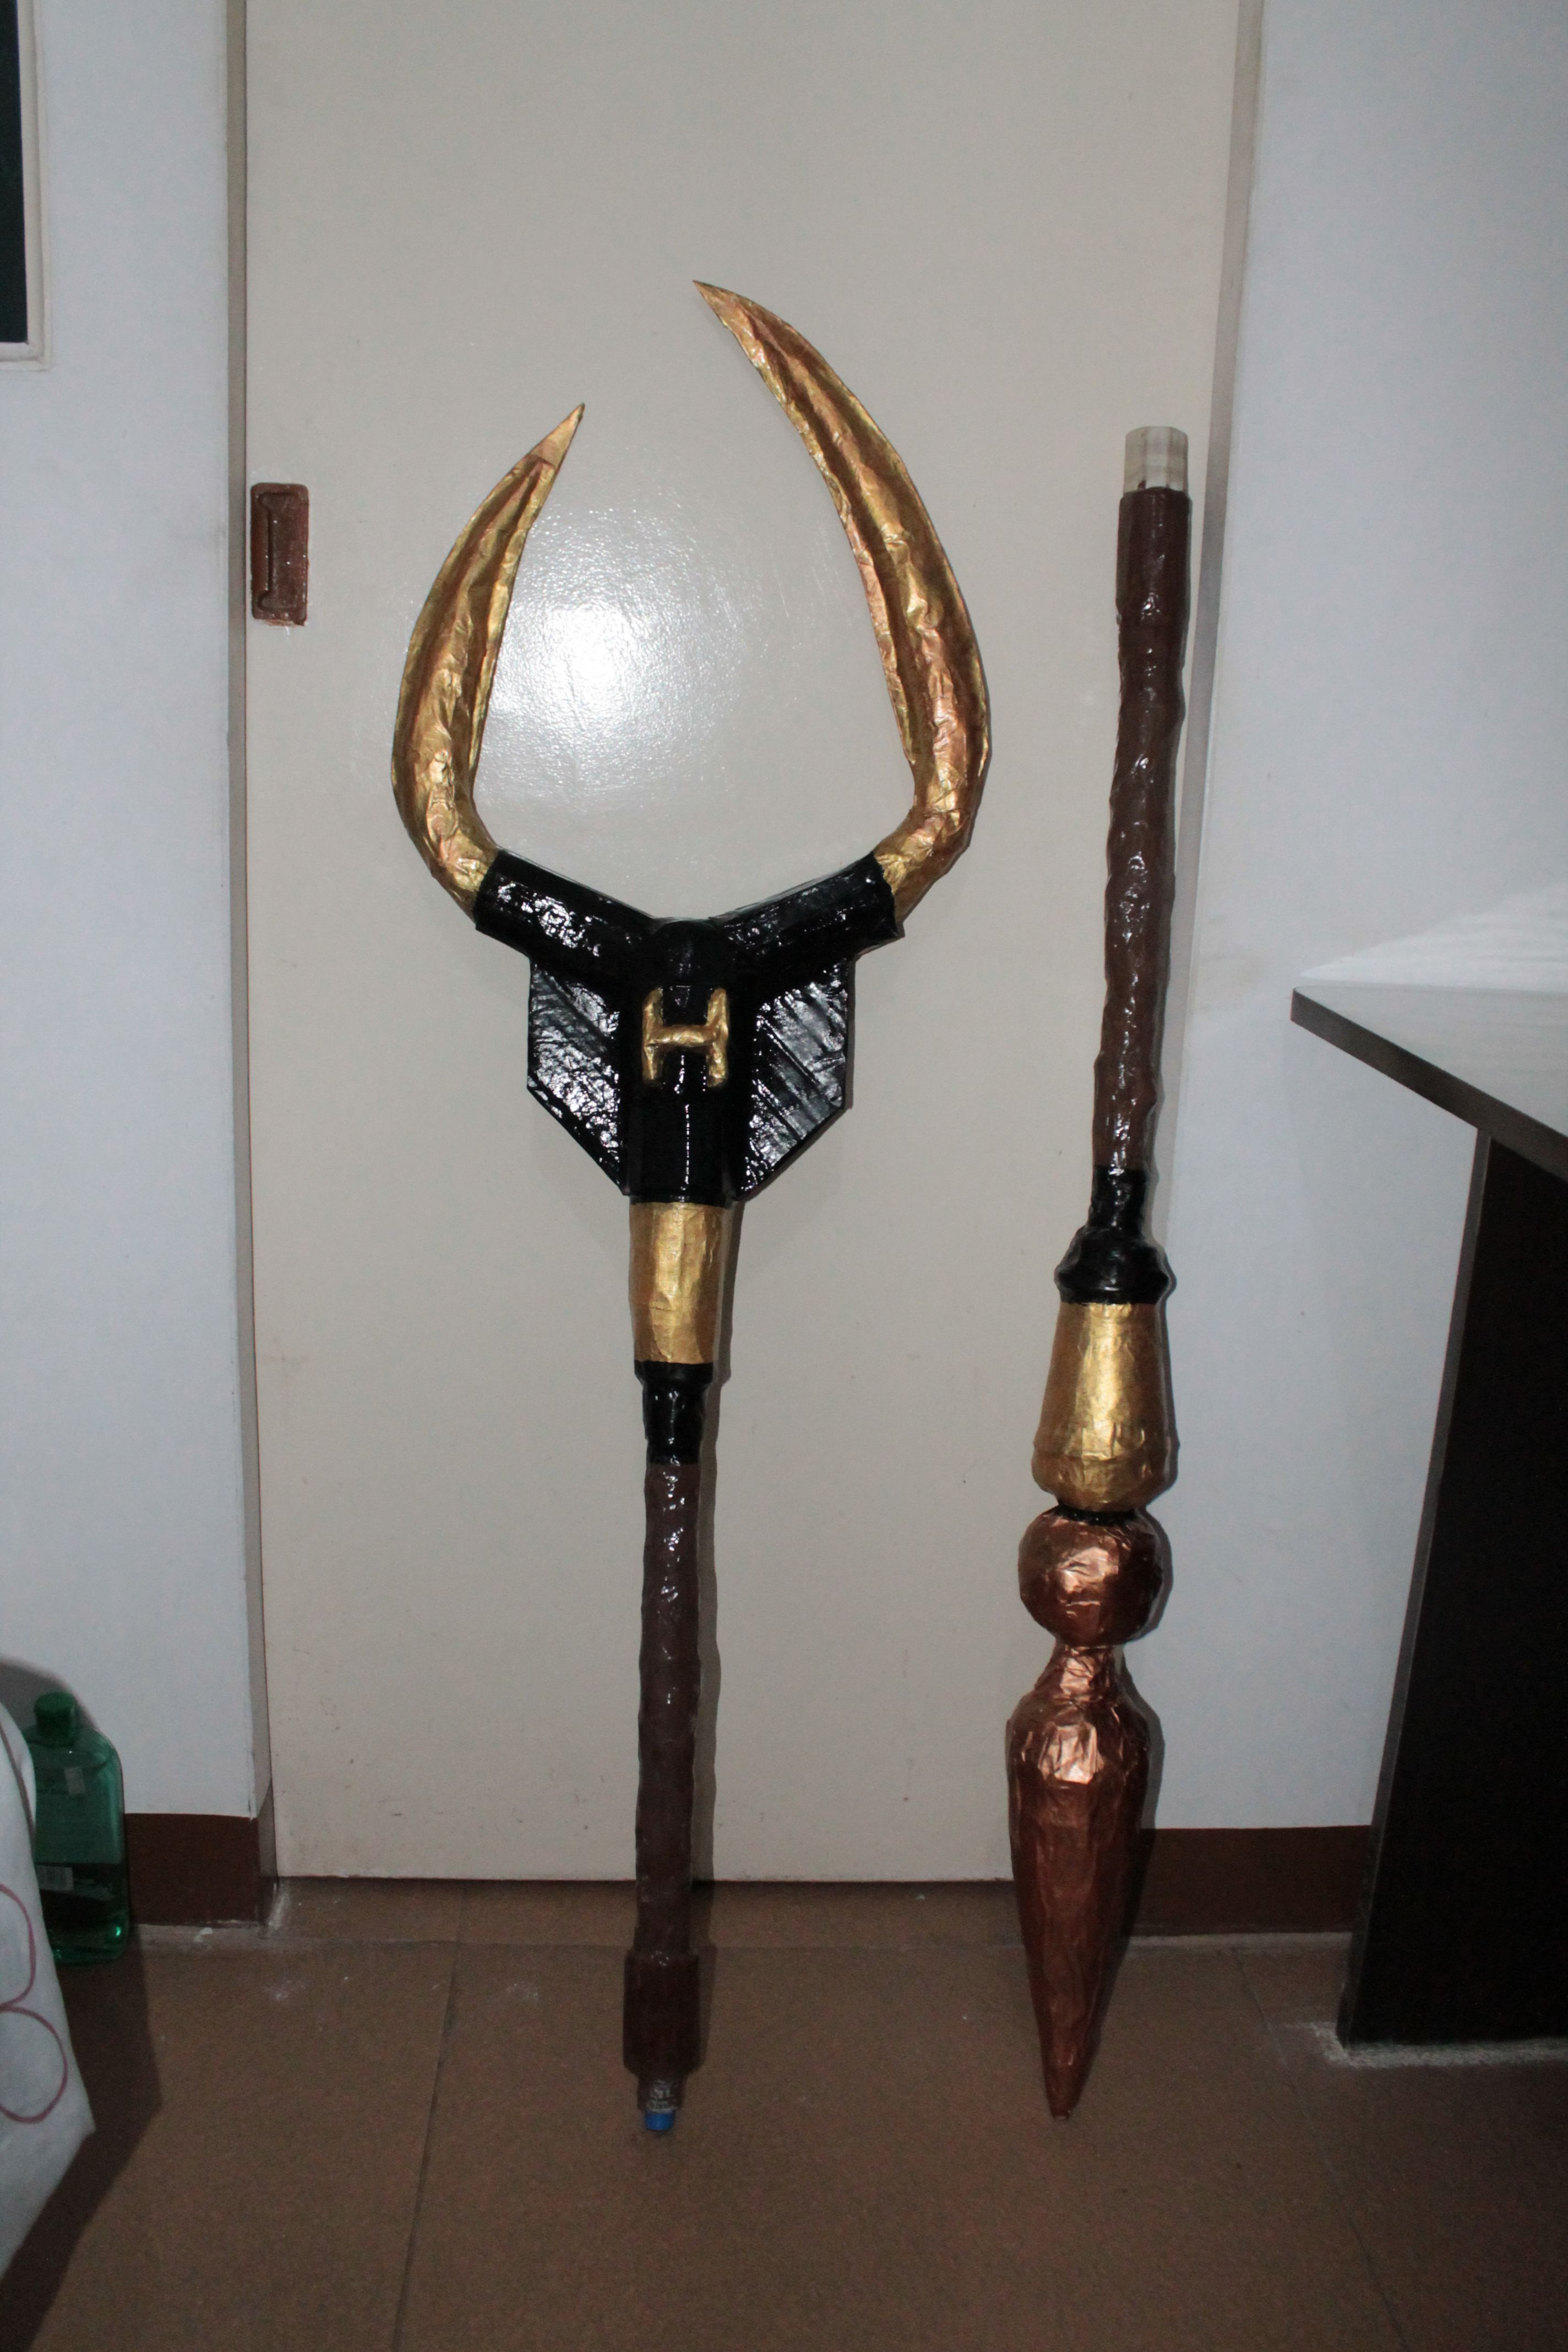 Hades' Two-Pronged Spear (or Pitchfork) when detached ...